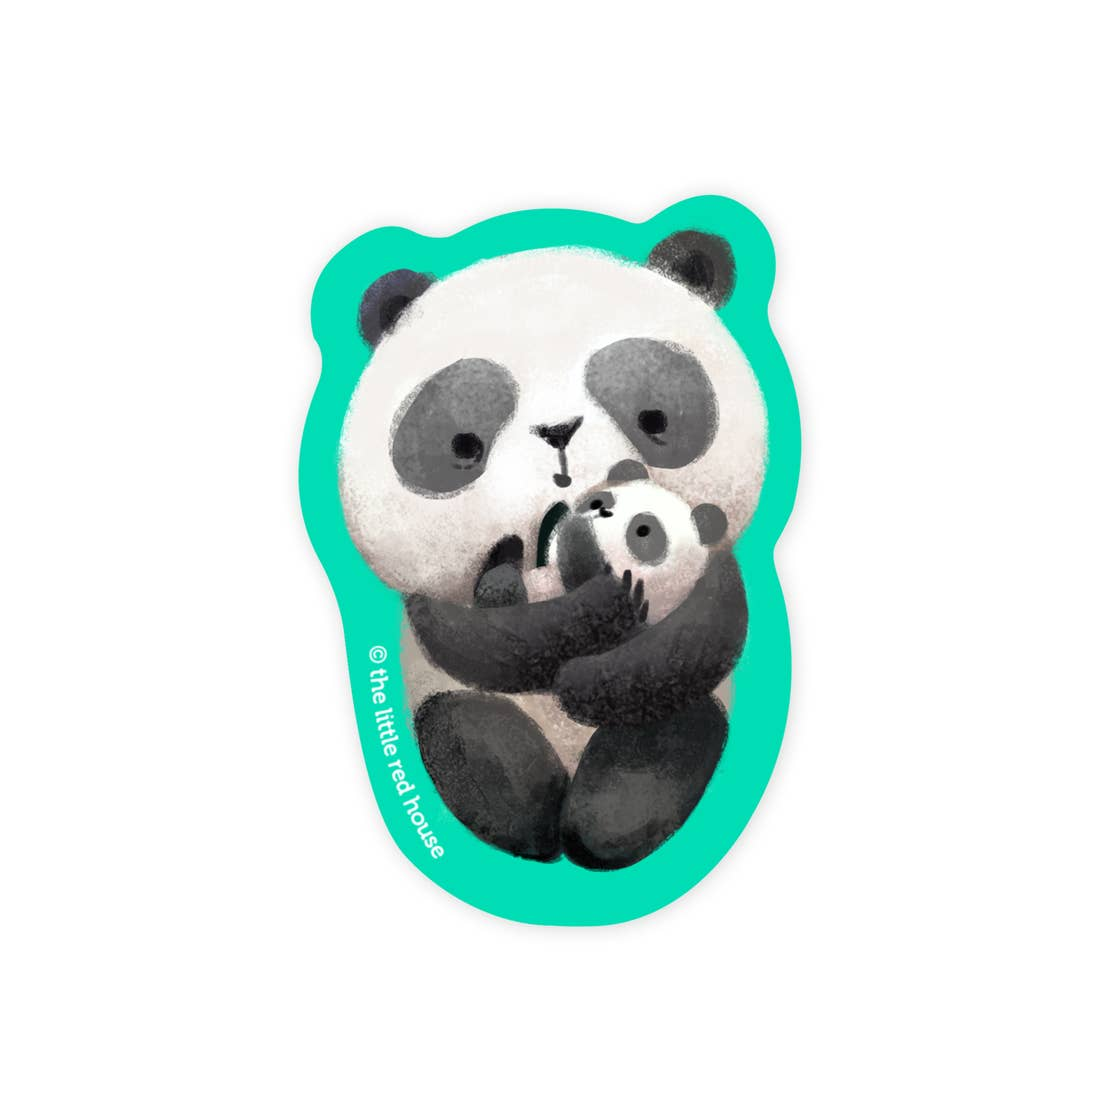 Baby Panda Sticker, The Little Red House